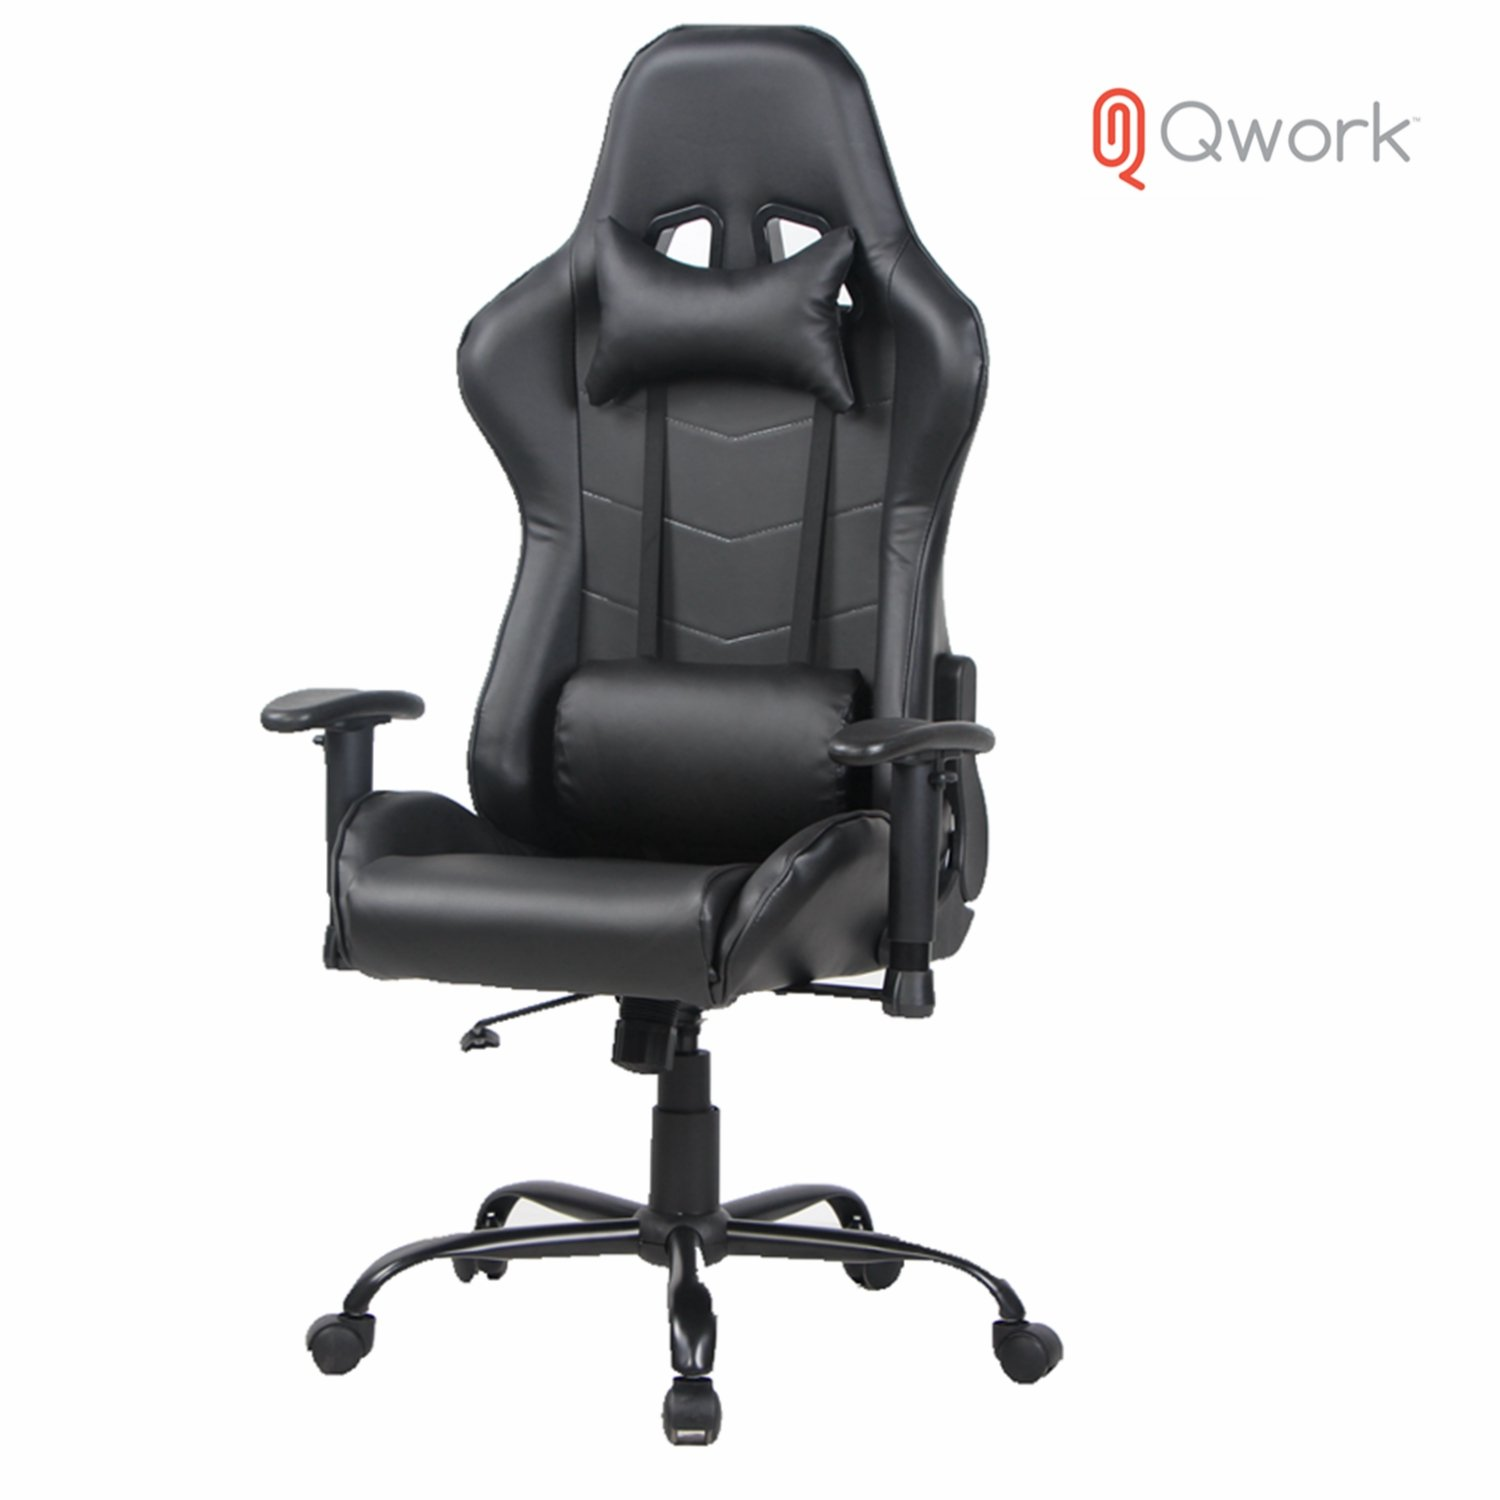 Qwork Gaming Chair High Back Computer Chair With Headrest and Lumbar Support, Ergonomic designs Extremely Durable PU Leather Steel Frame Racing Chair